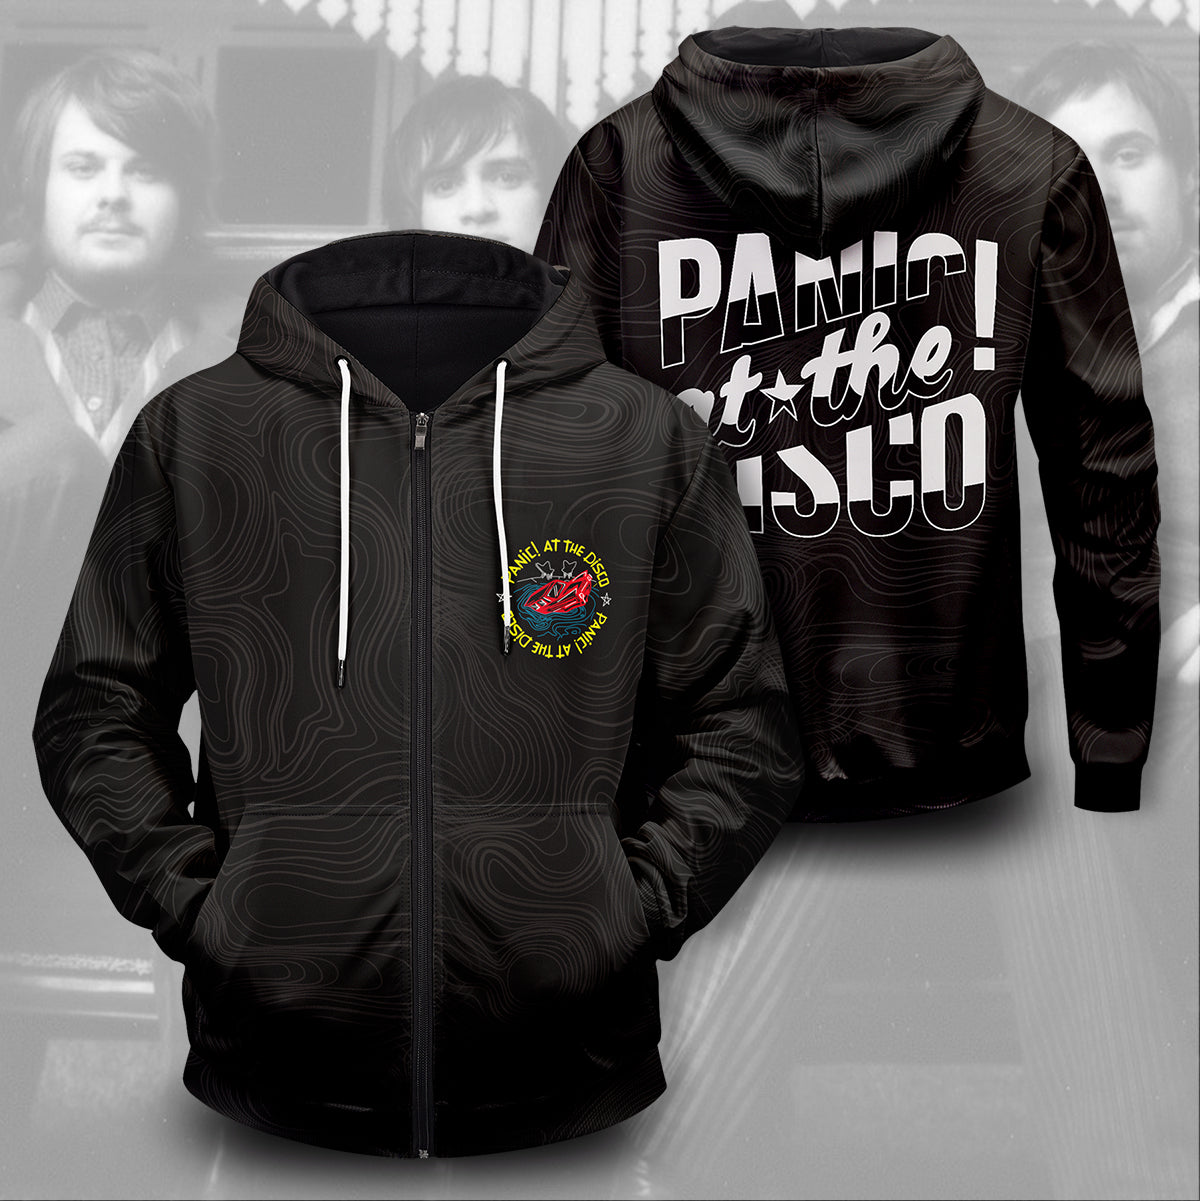 Panic at the Disco Unisex Zipped Hoodie